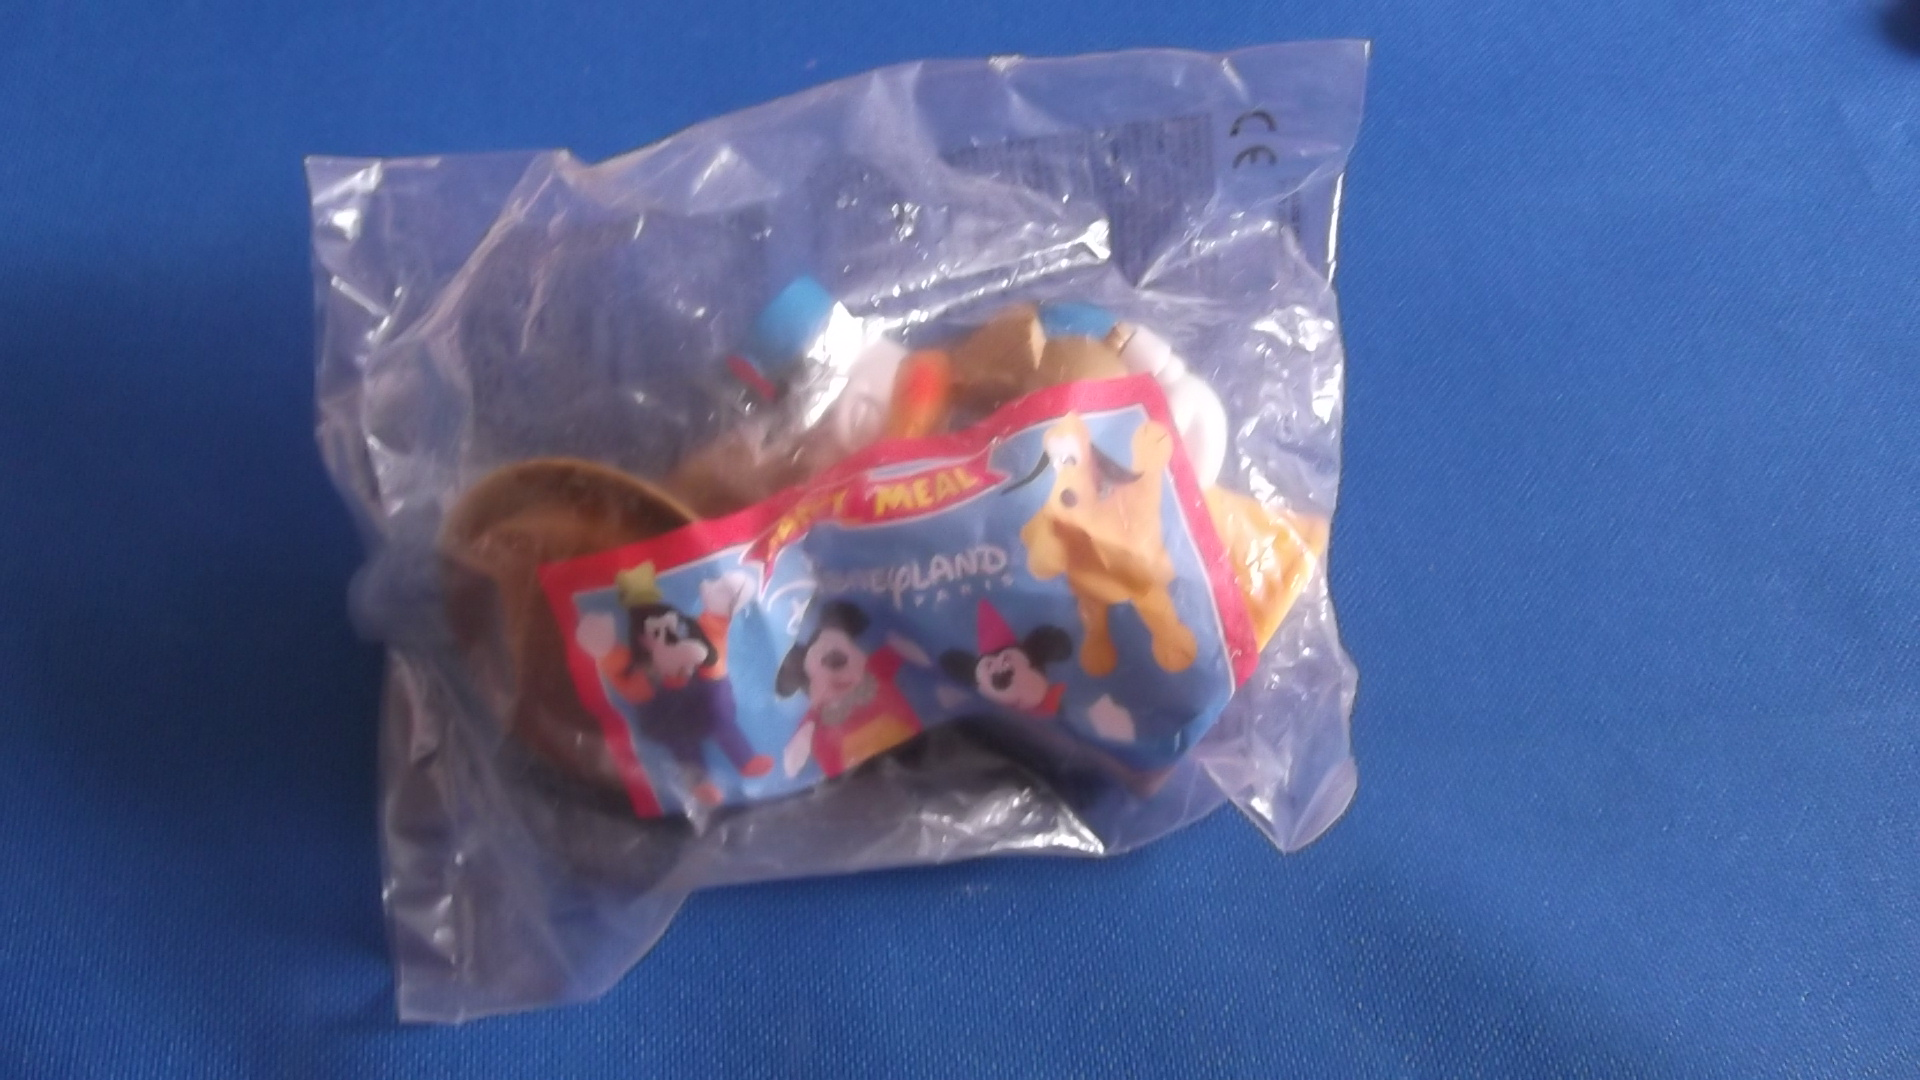 McDonalds Disneyland Paris Donald Duck Toy From 2001 New